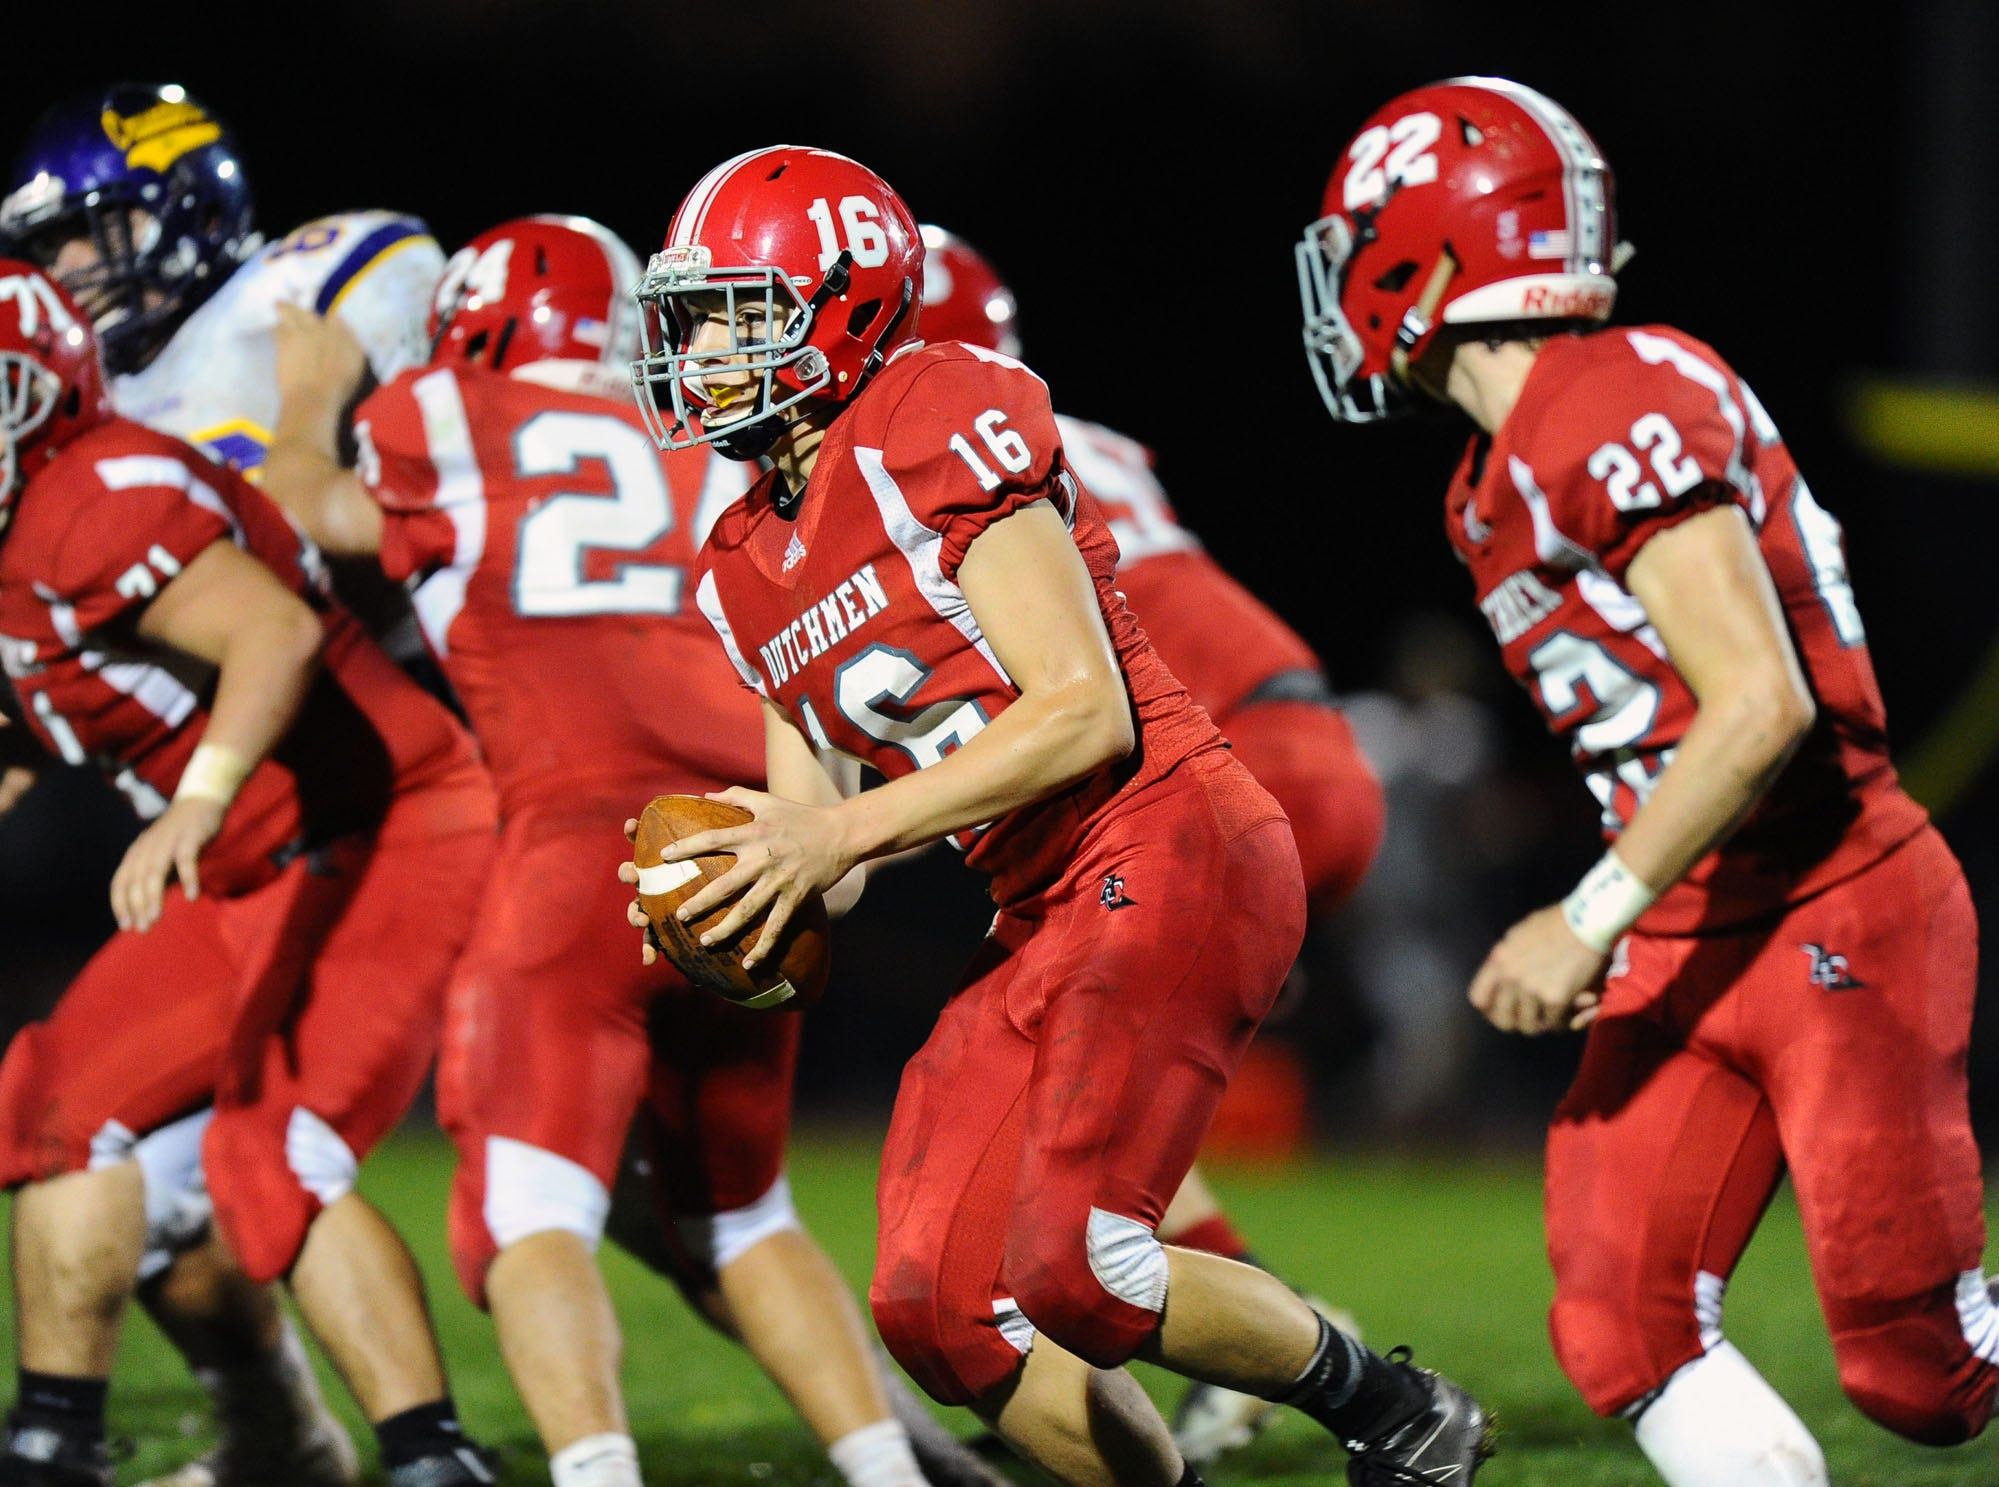 Annville-Cleona QB Jeremy Bours (16) tosses the ball to RB Tyler Long (22) during the 3rd quarter of Friday night's game against Lancaster Catholic.